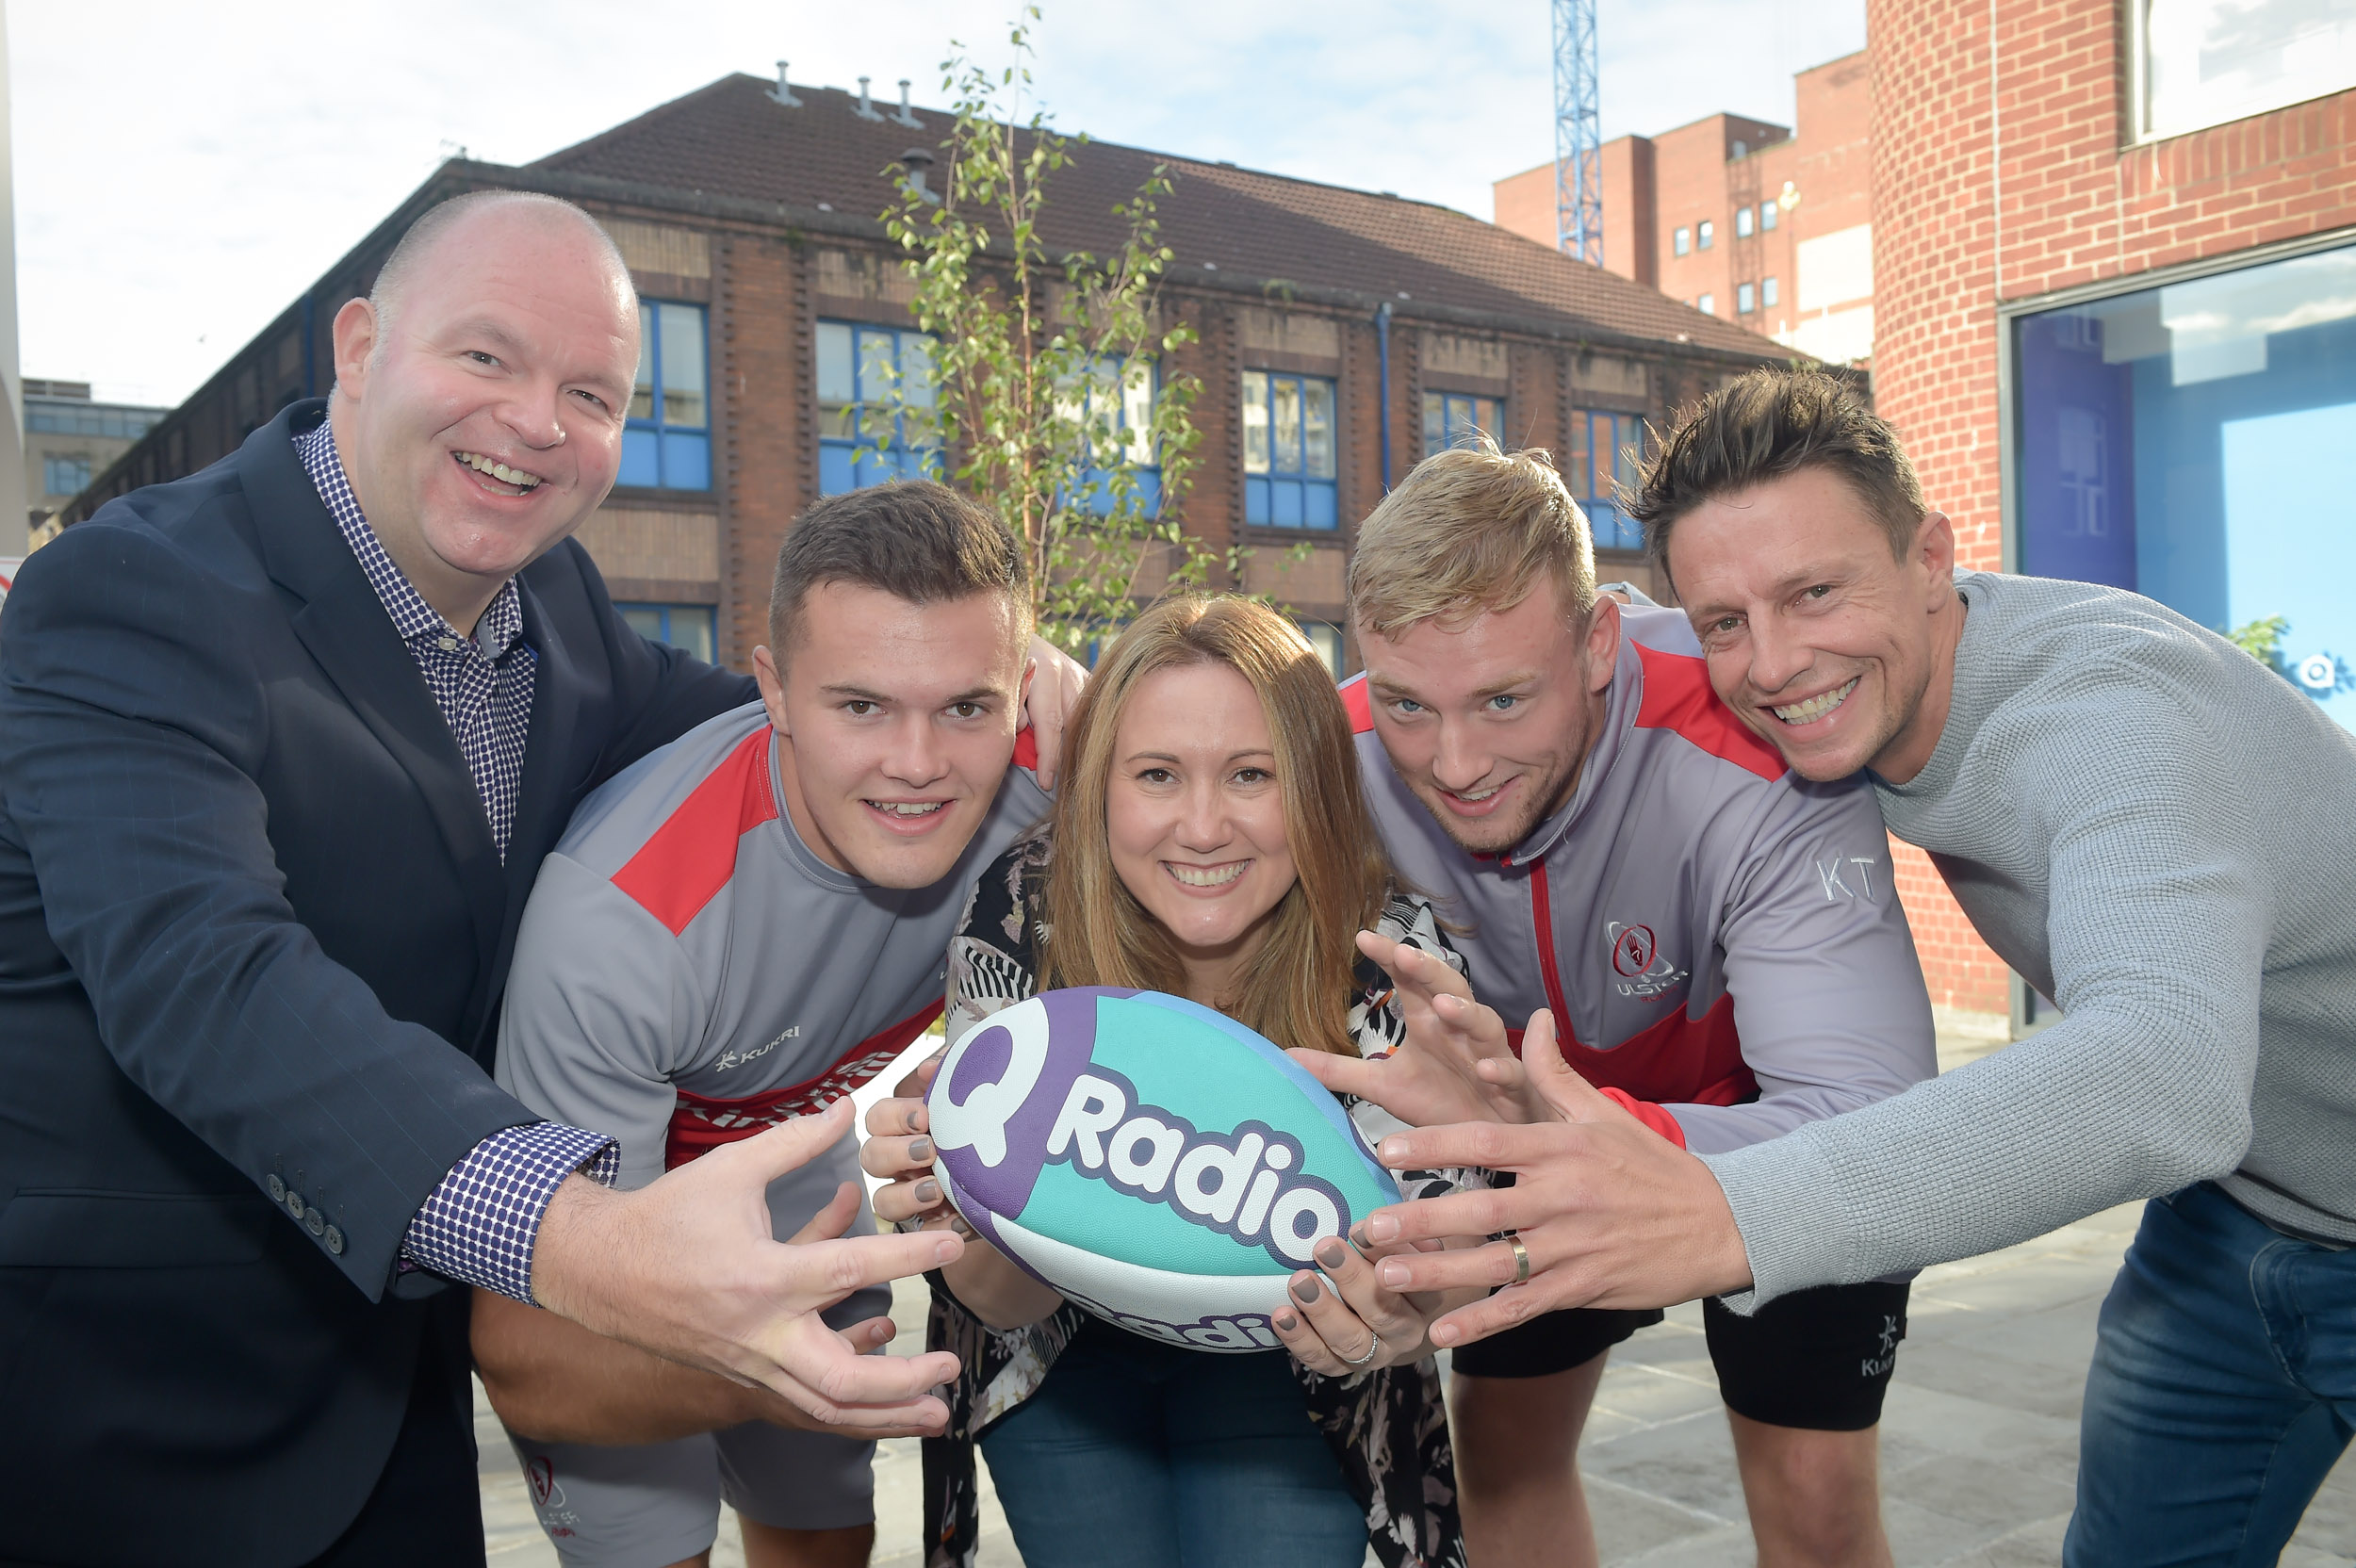 Q Radio lineout with Ulster Rugby to announce official broadcast partnership